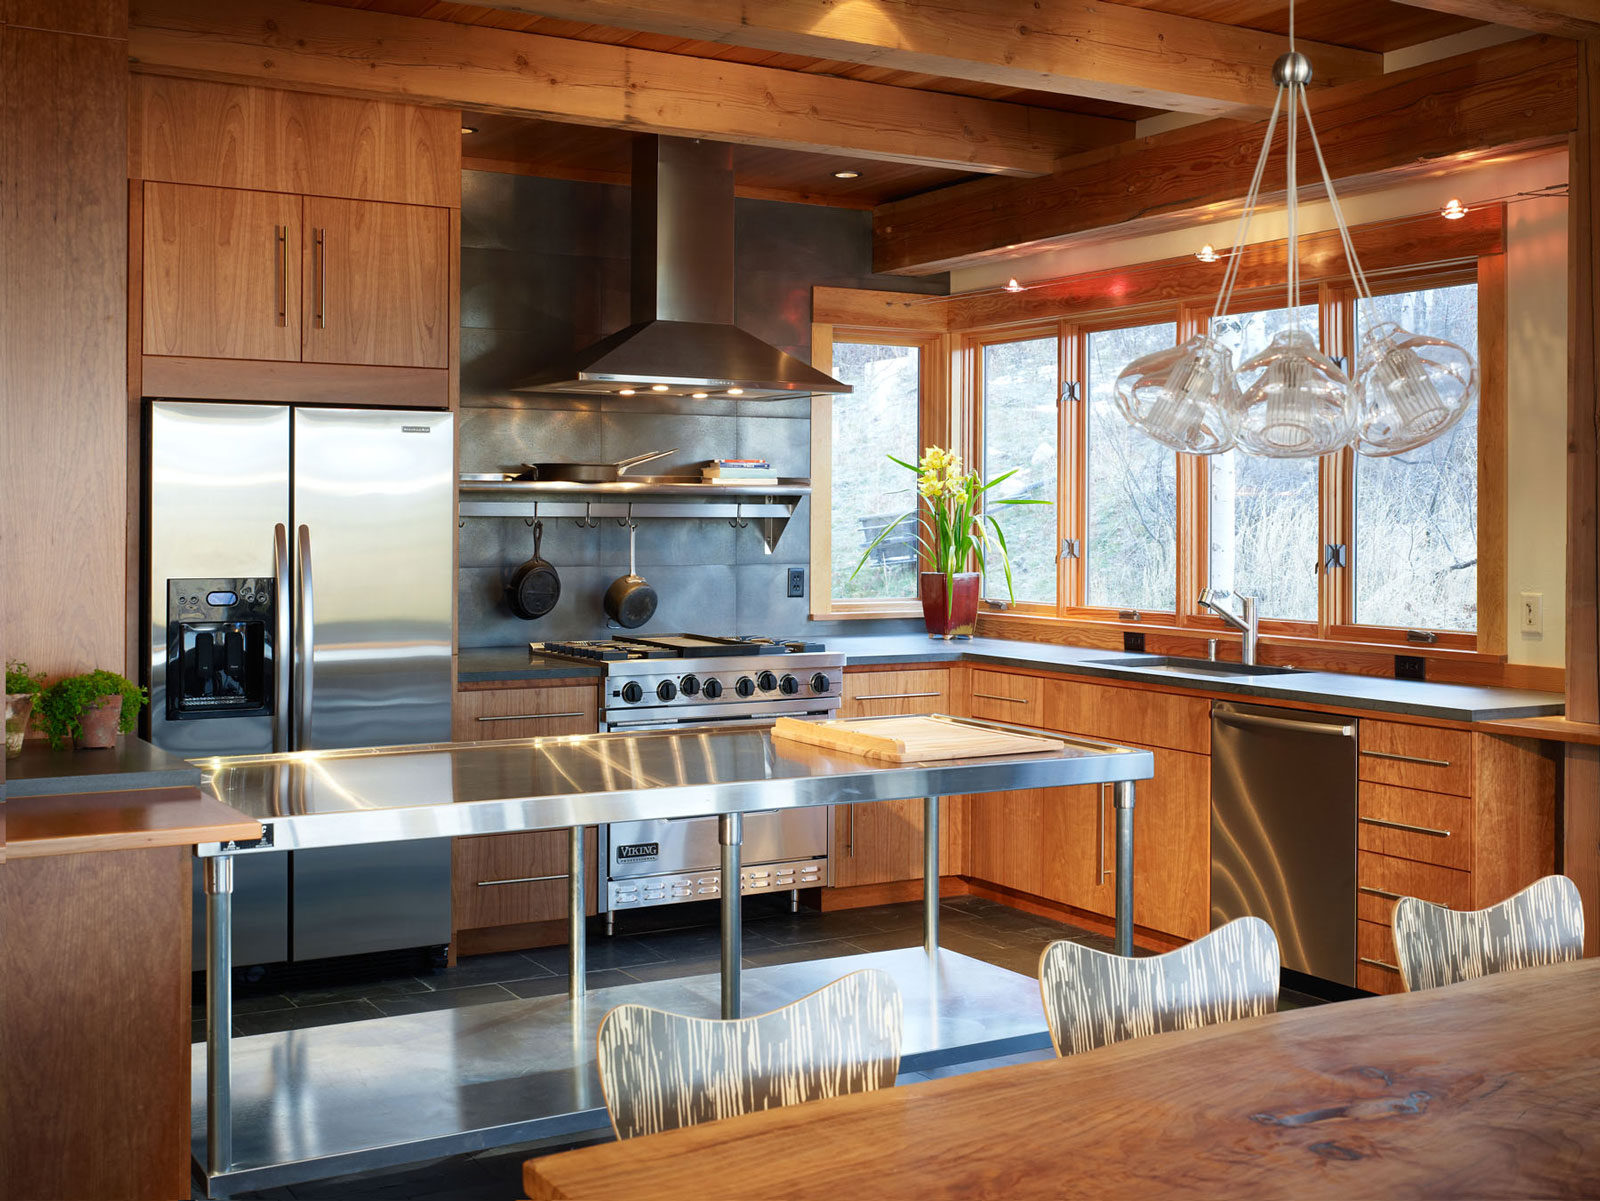 stainless steel kitchen table cheap motels with kitchens tables for commercial purpose best living talking about the multipurpose besides being island can also be dining